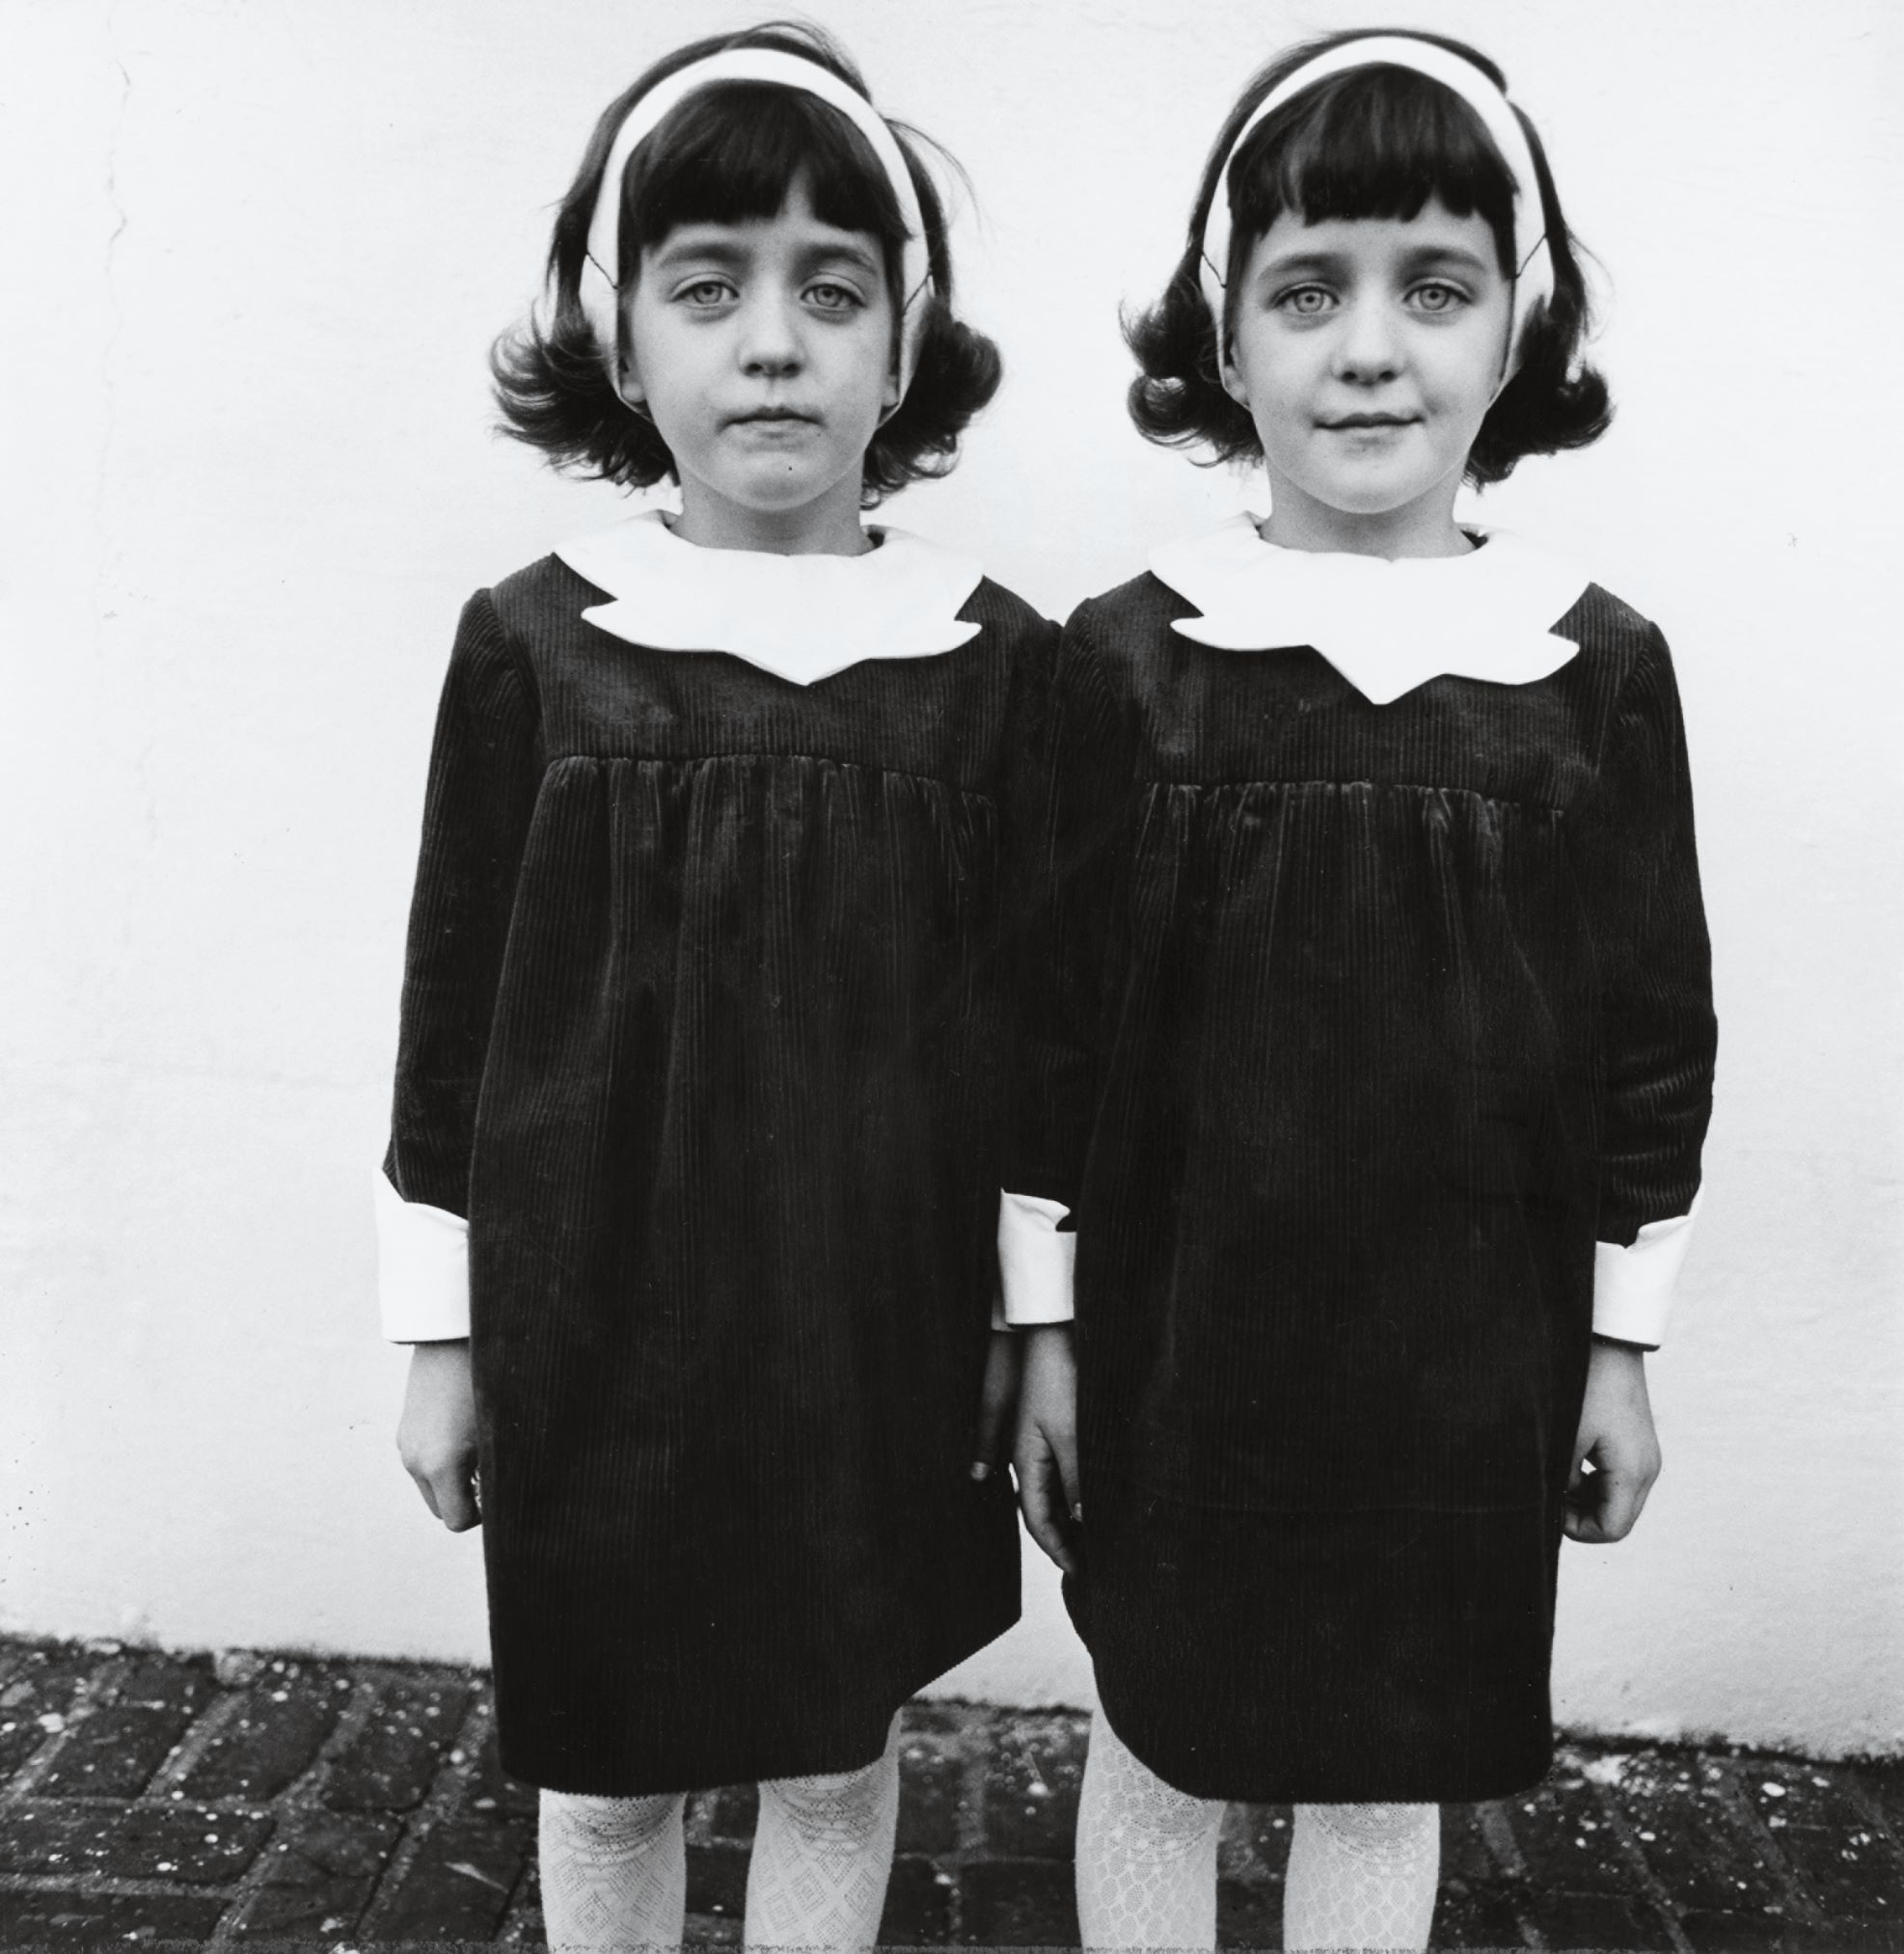 Identical twins, Roselle, NJ, 1966 by Diane Arbus